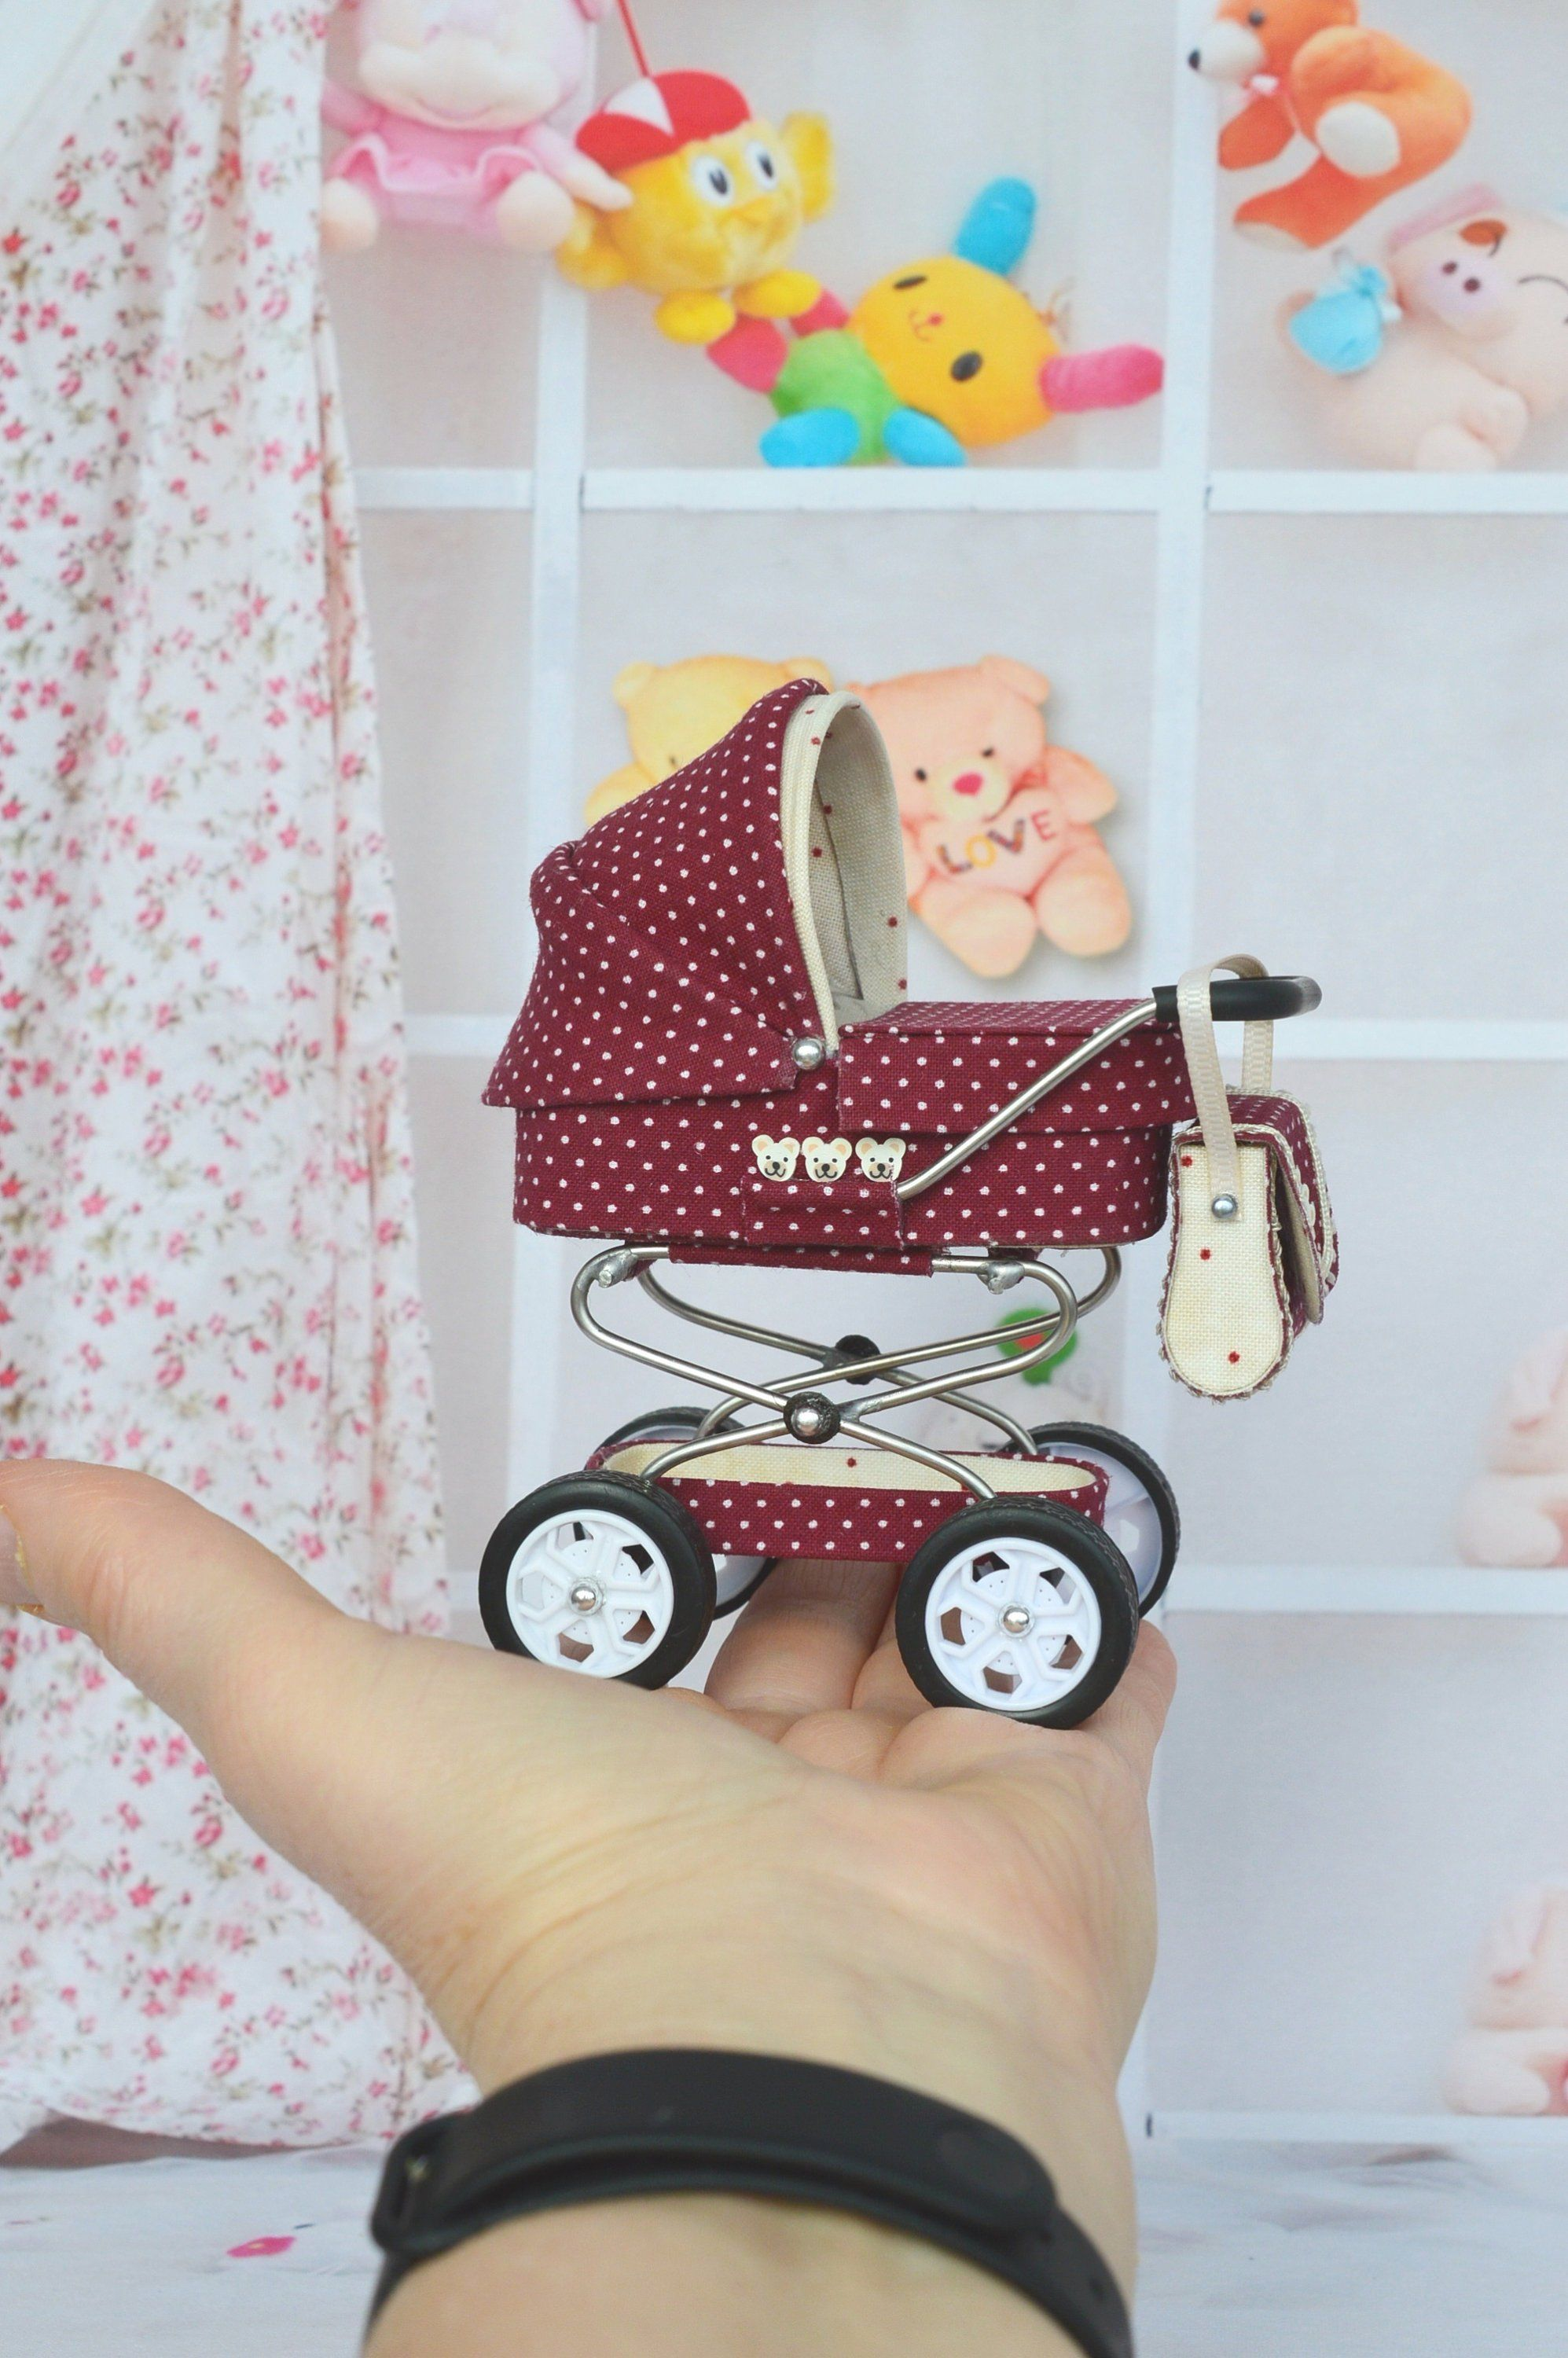 Miniature Baby Carriage Stroller  12th scale/  Miniature for doll house/  Miniature collection/  Stroller for Dolls #dollhouse